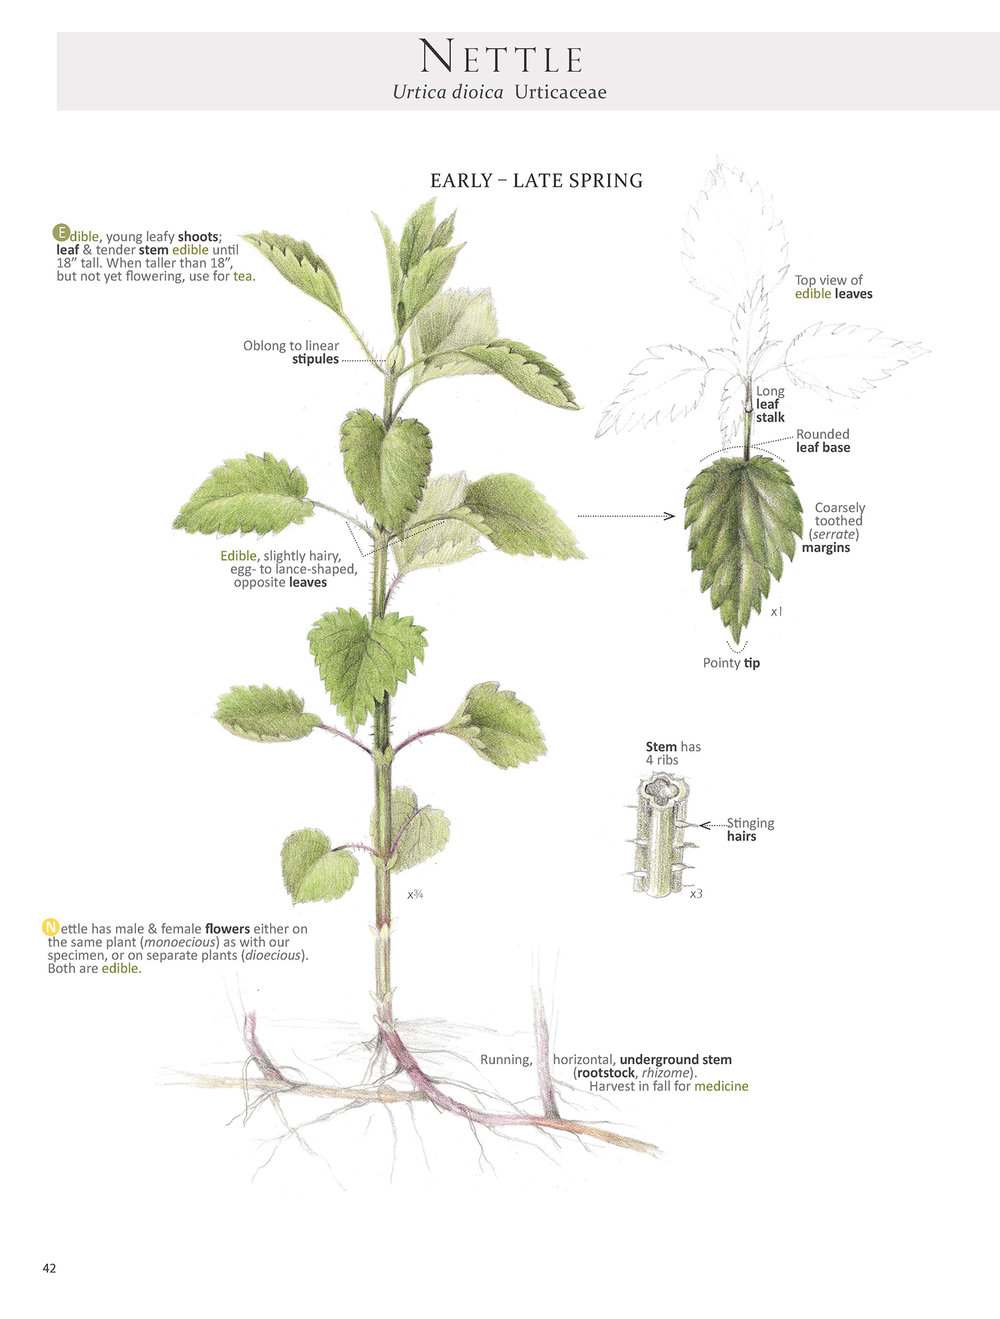 Nettle plant map from Foraging & Feasting by Dina Falconi; illustrated by Wendy Hollender. www.botanicalartspress.com Book link here:  http://bit.ly/1Auh44Q